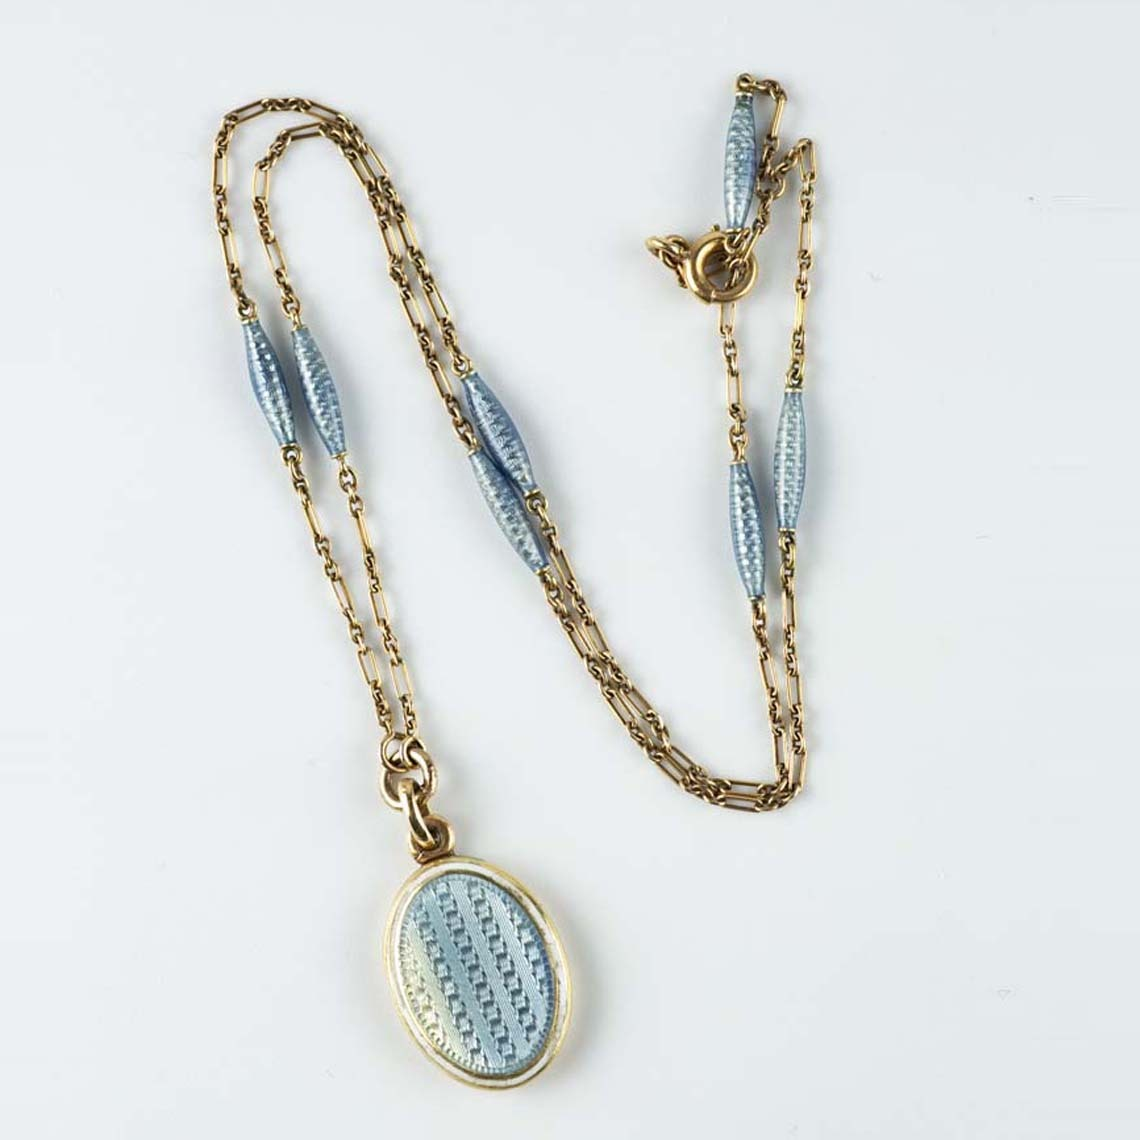 Edwardian enamel locket